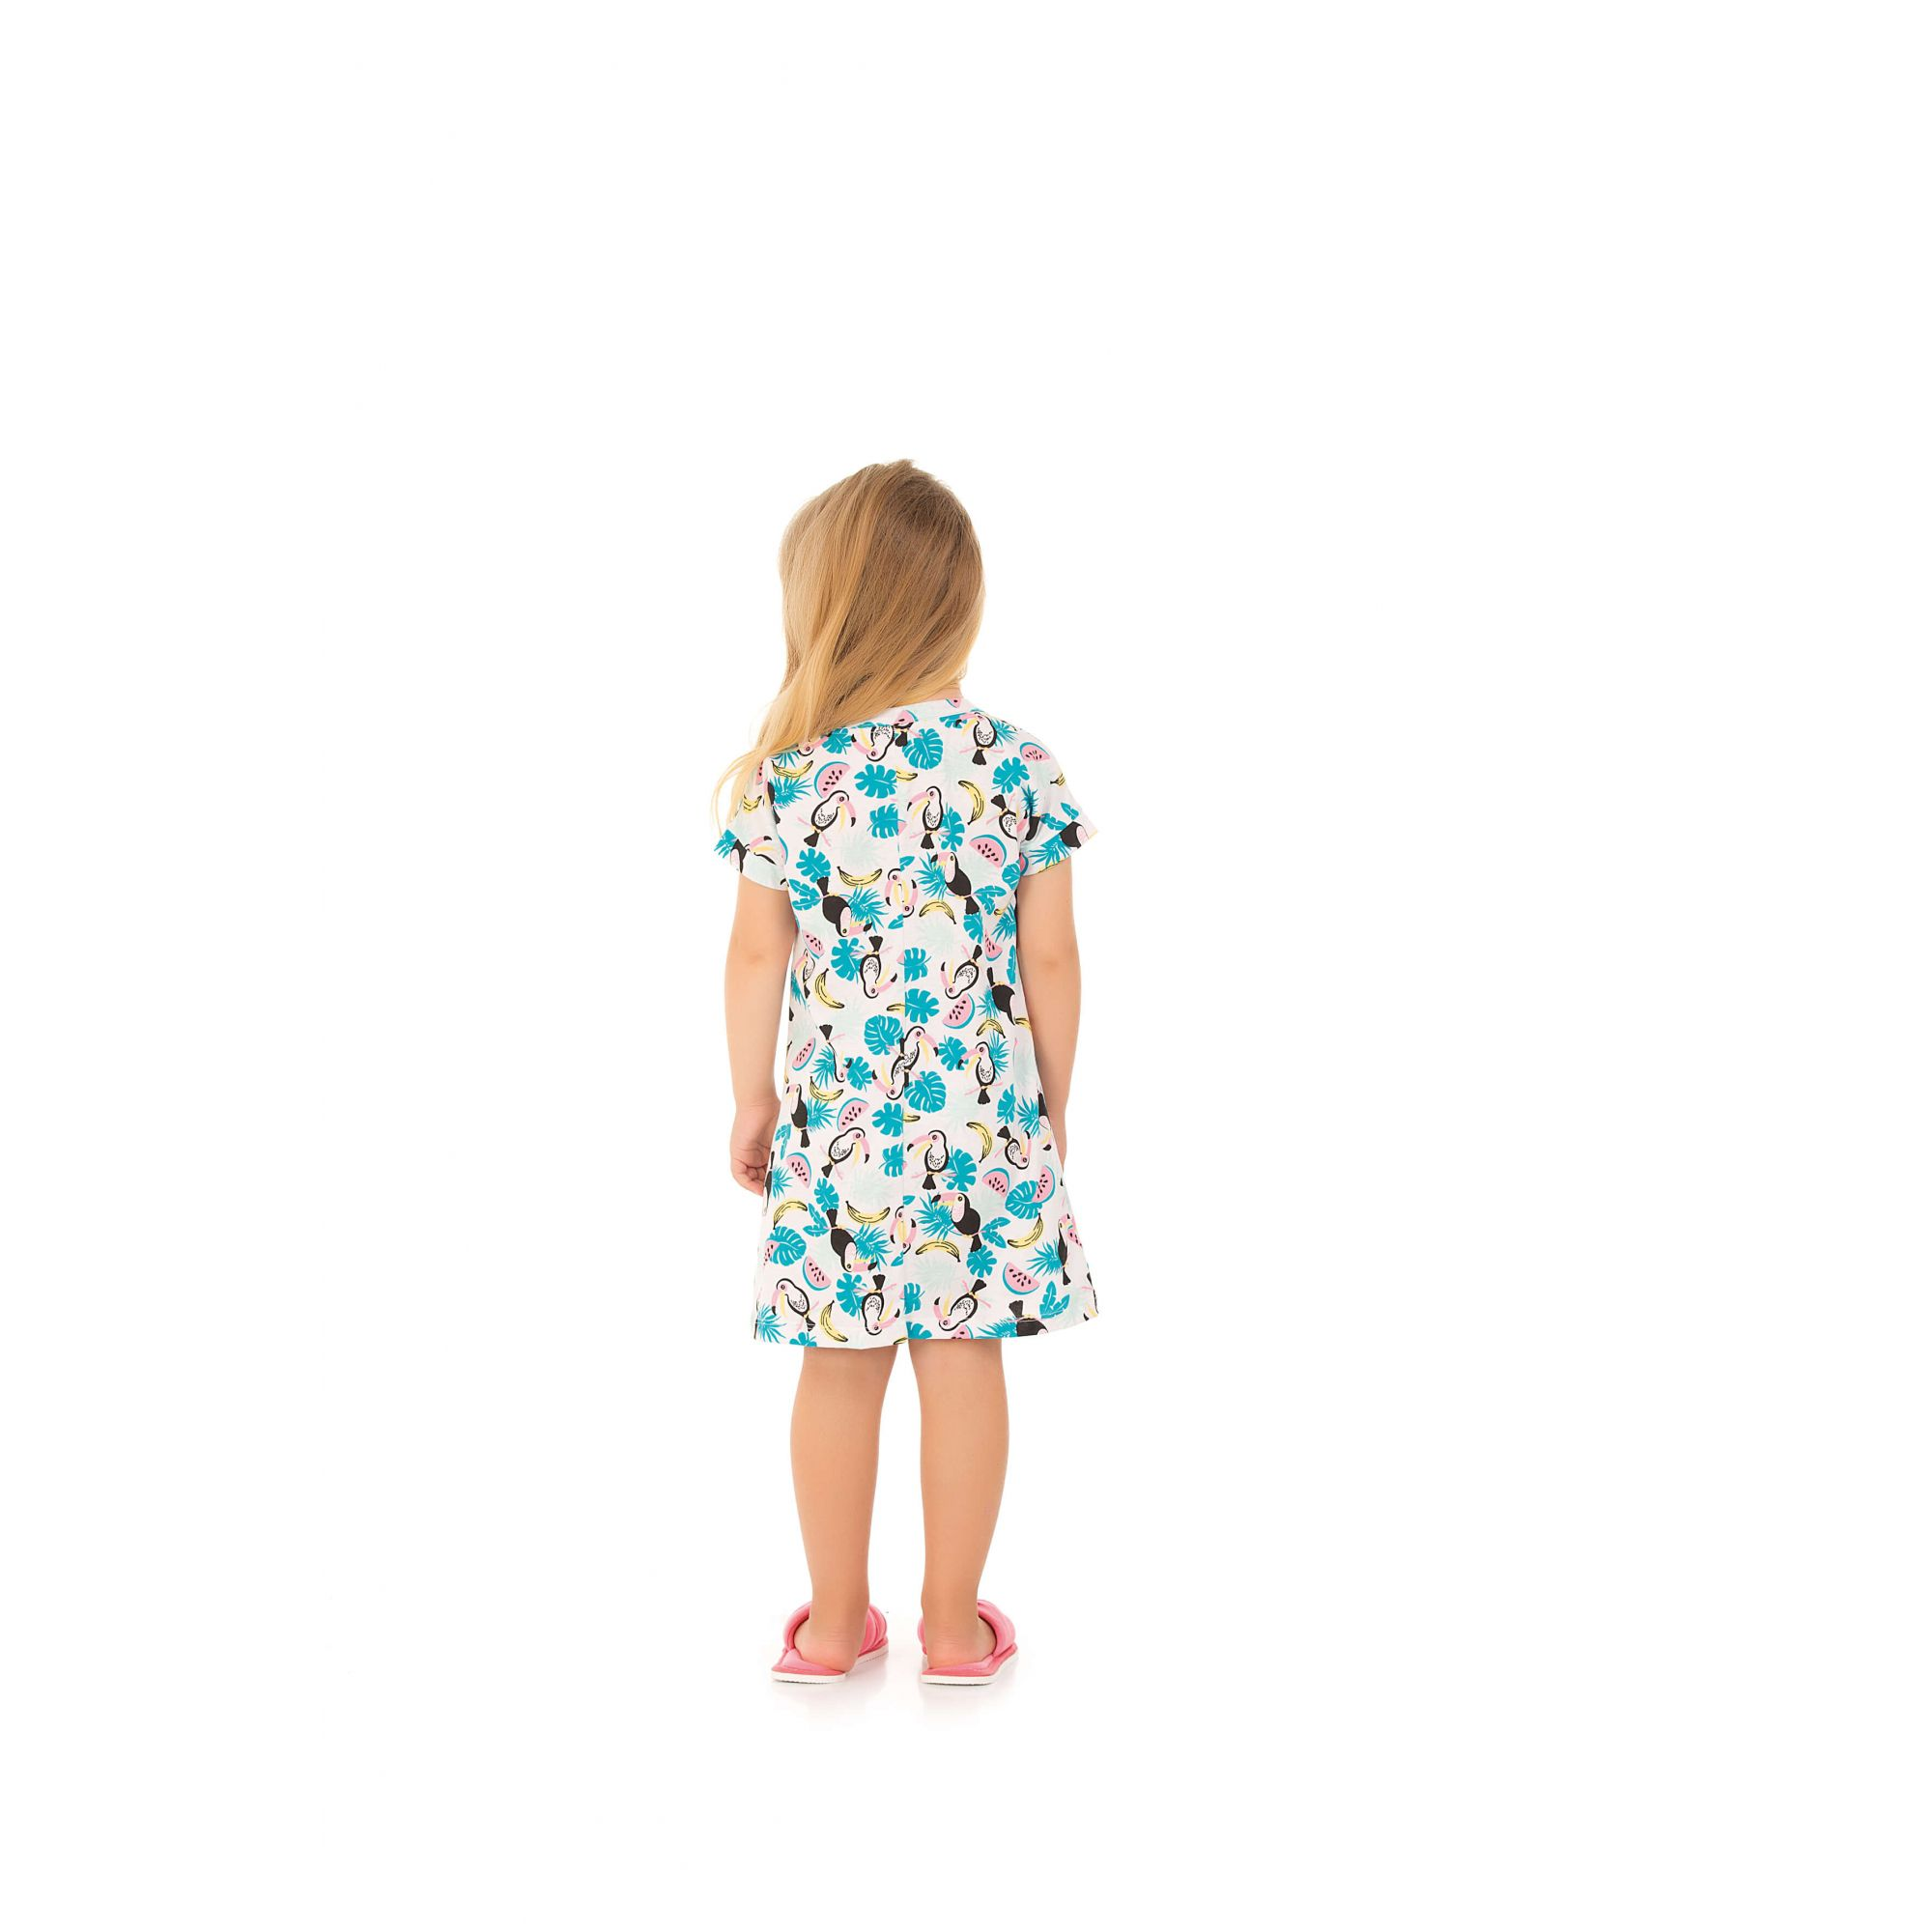 214/C - Camisola Infantil  Love Fruits